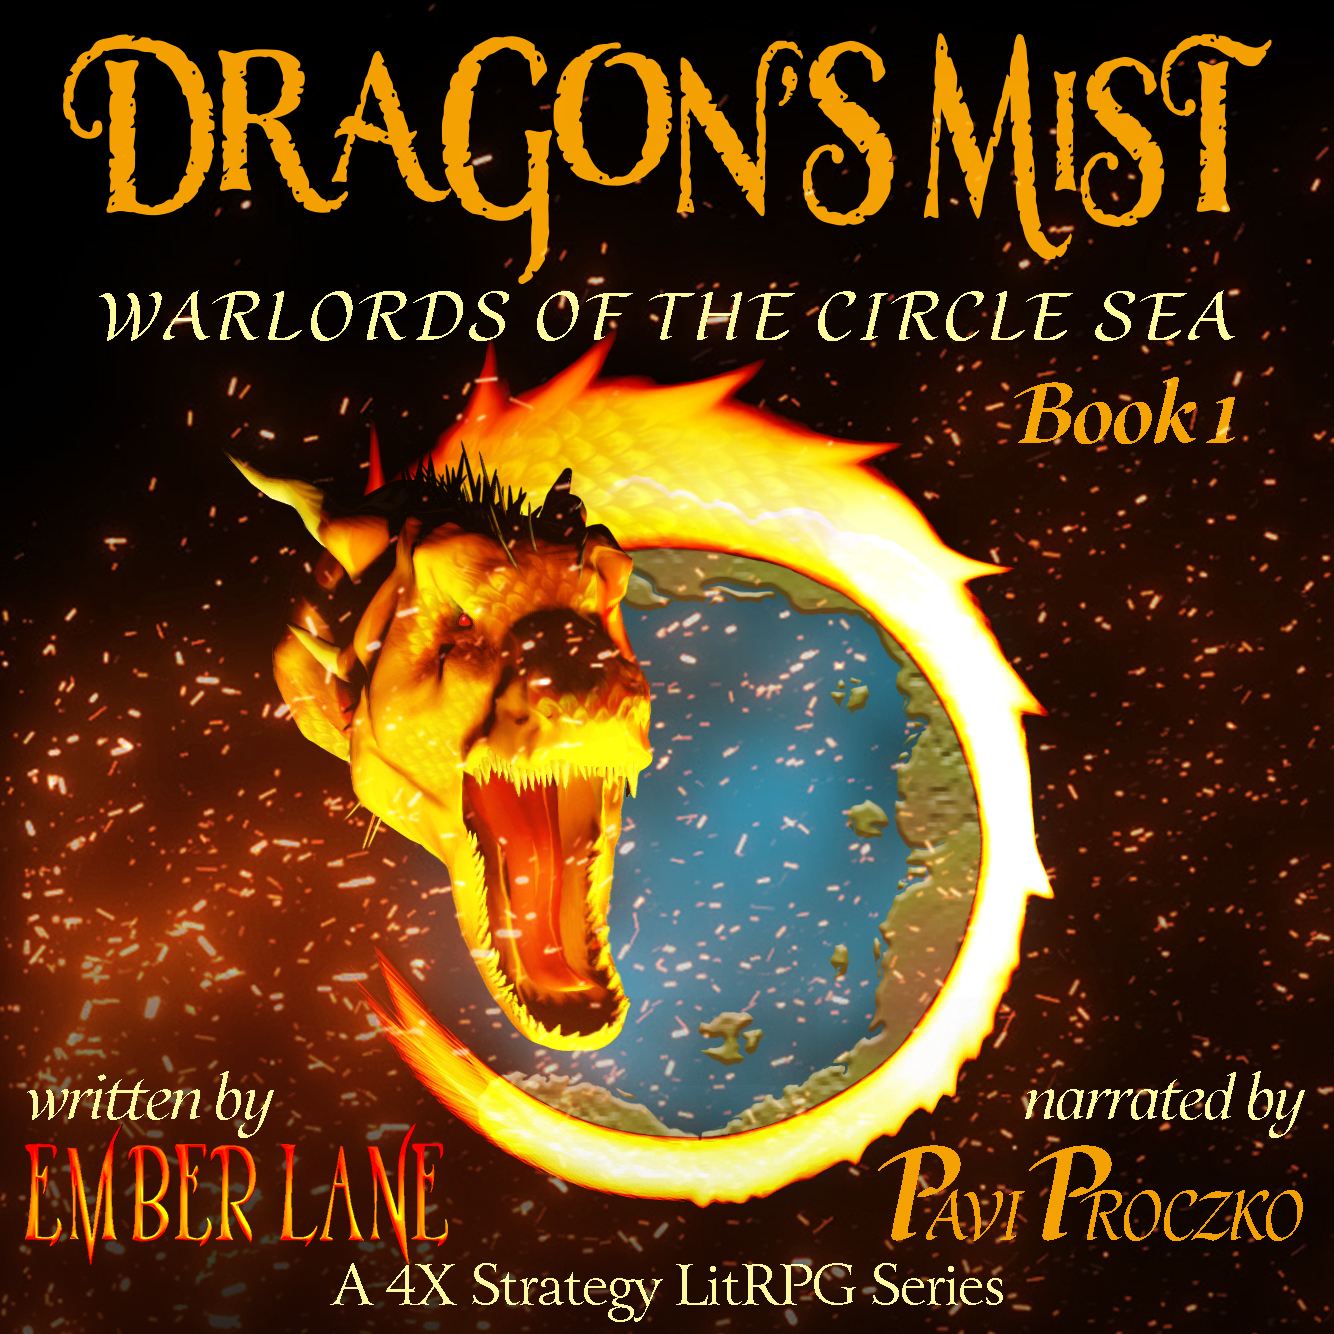 Dragons Mist Audiobook Cover Image